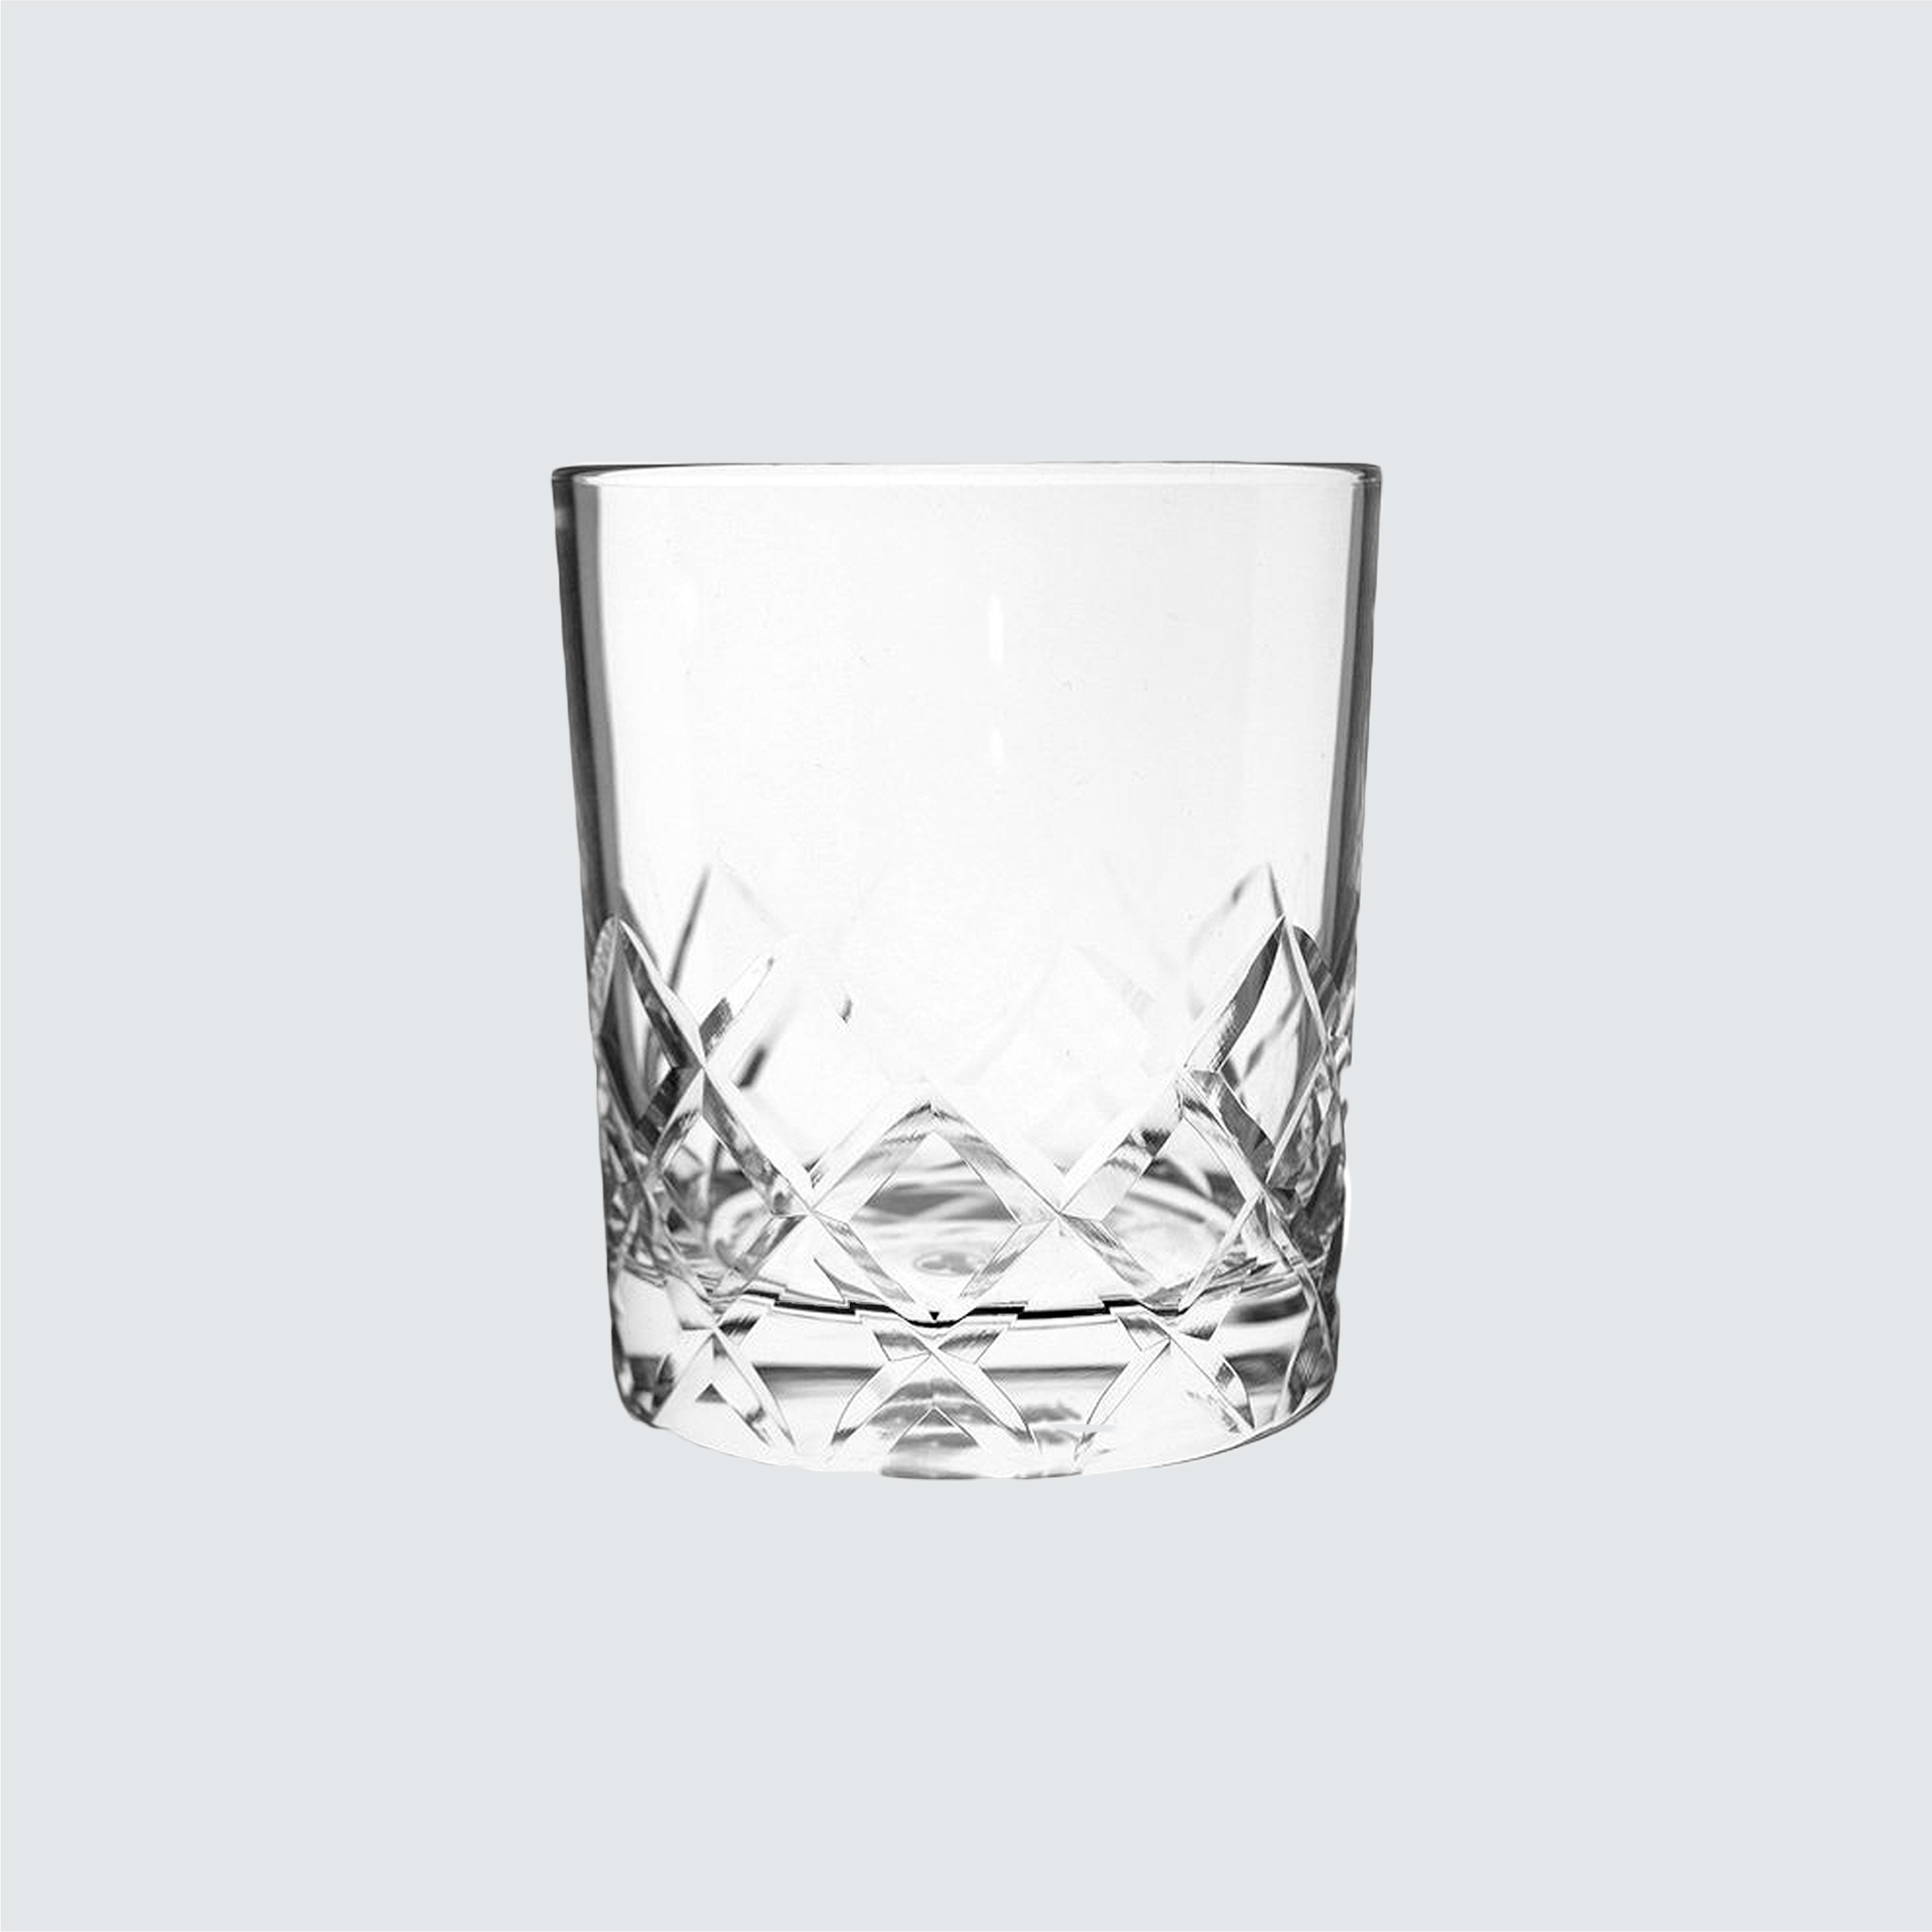 Unlike glass, crystal items need to be hand-washed: Rinse each glass in warm water and a teaspoon of white vinegar to remove tannin and lime deposits, then hand wash and dry with a soft cloth, says Céline Sanchez, brand director for crystal maker Saint-Louis.